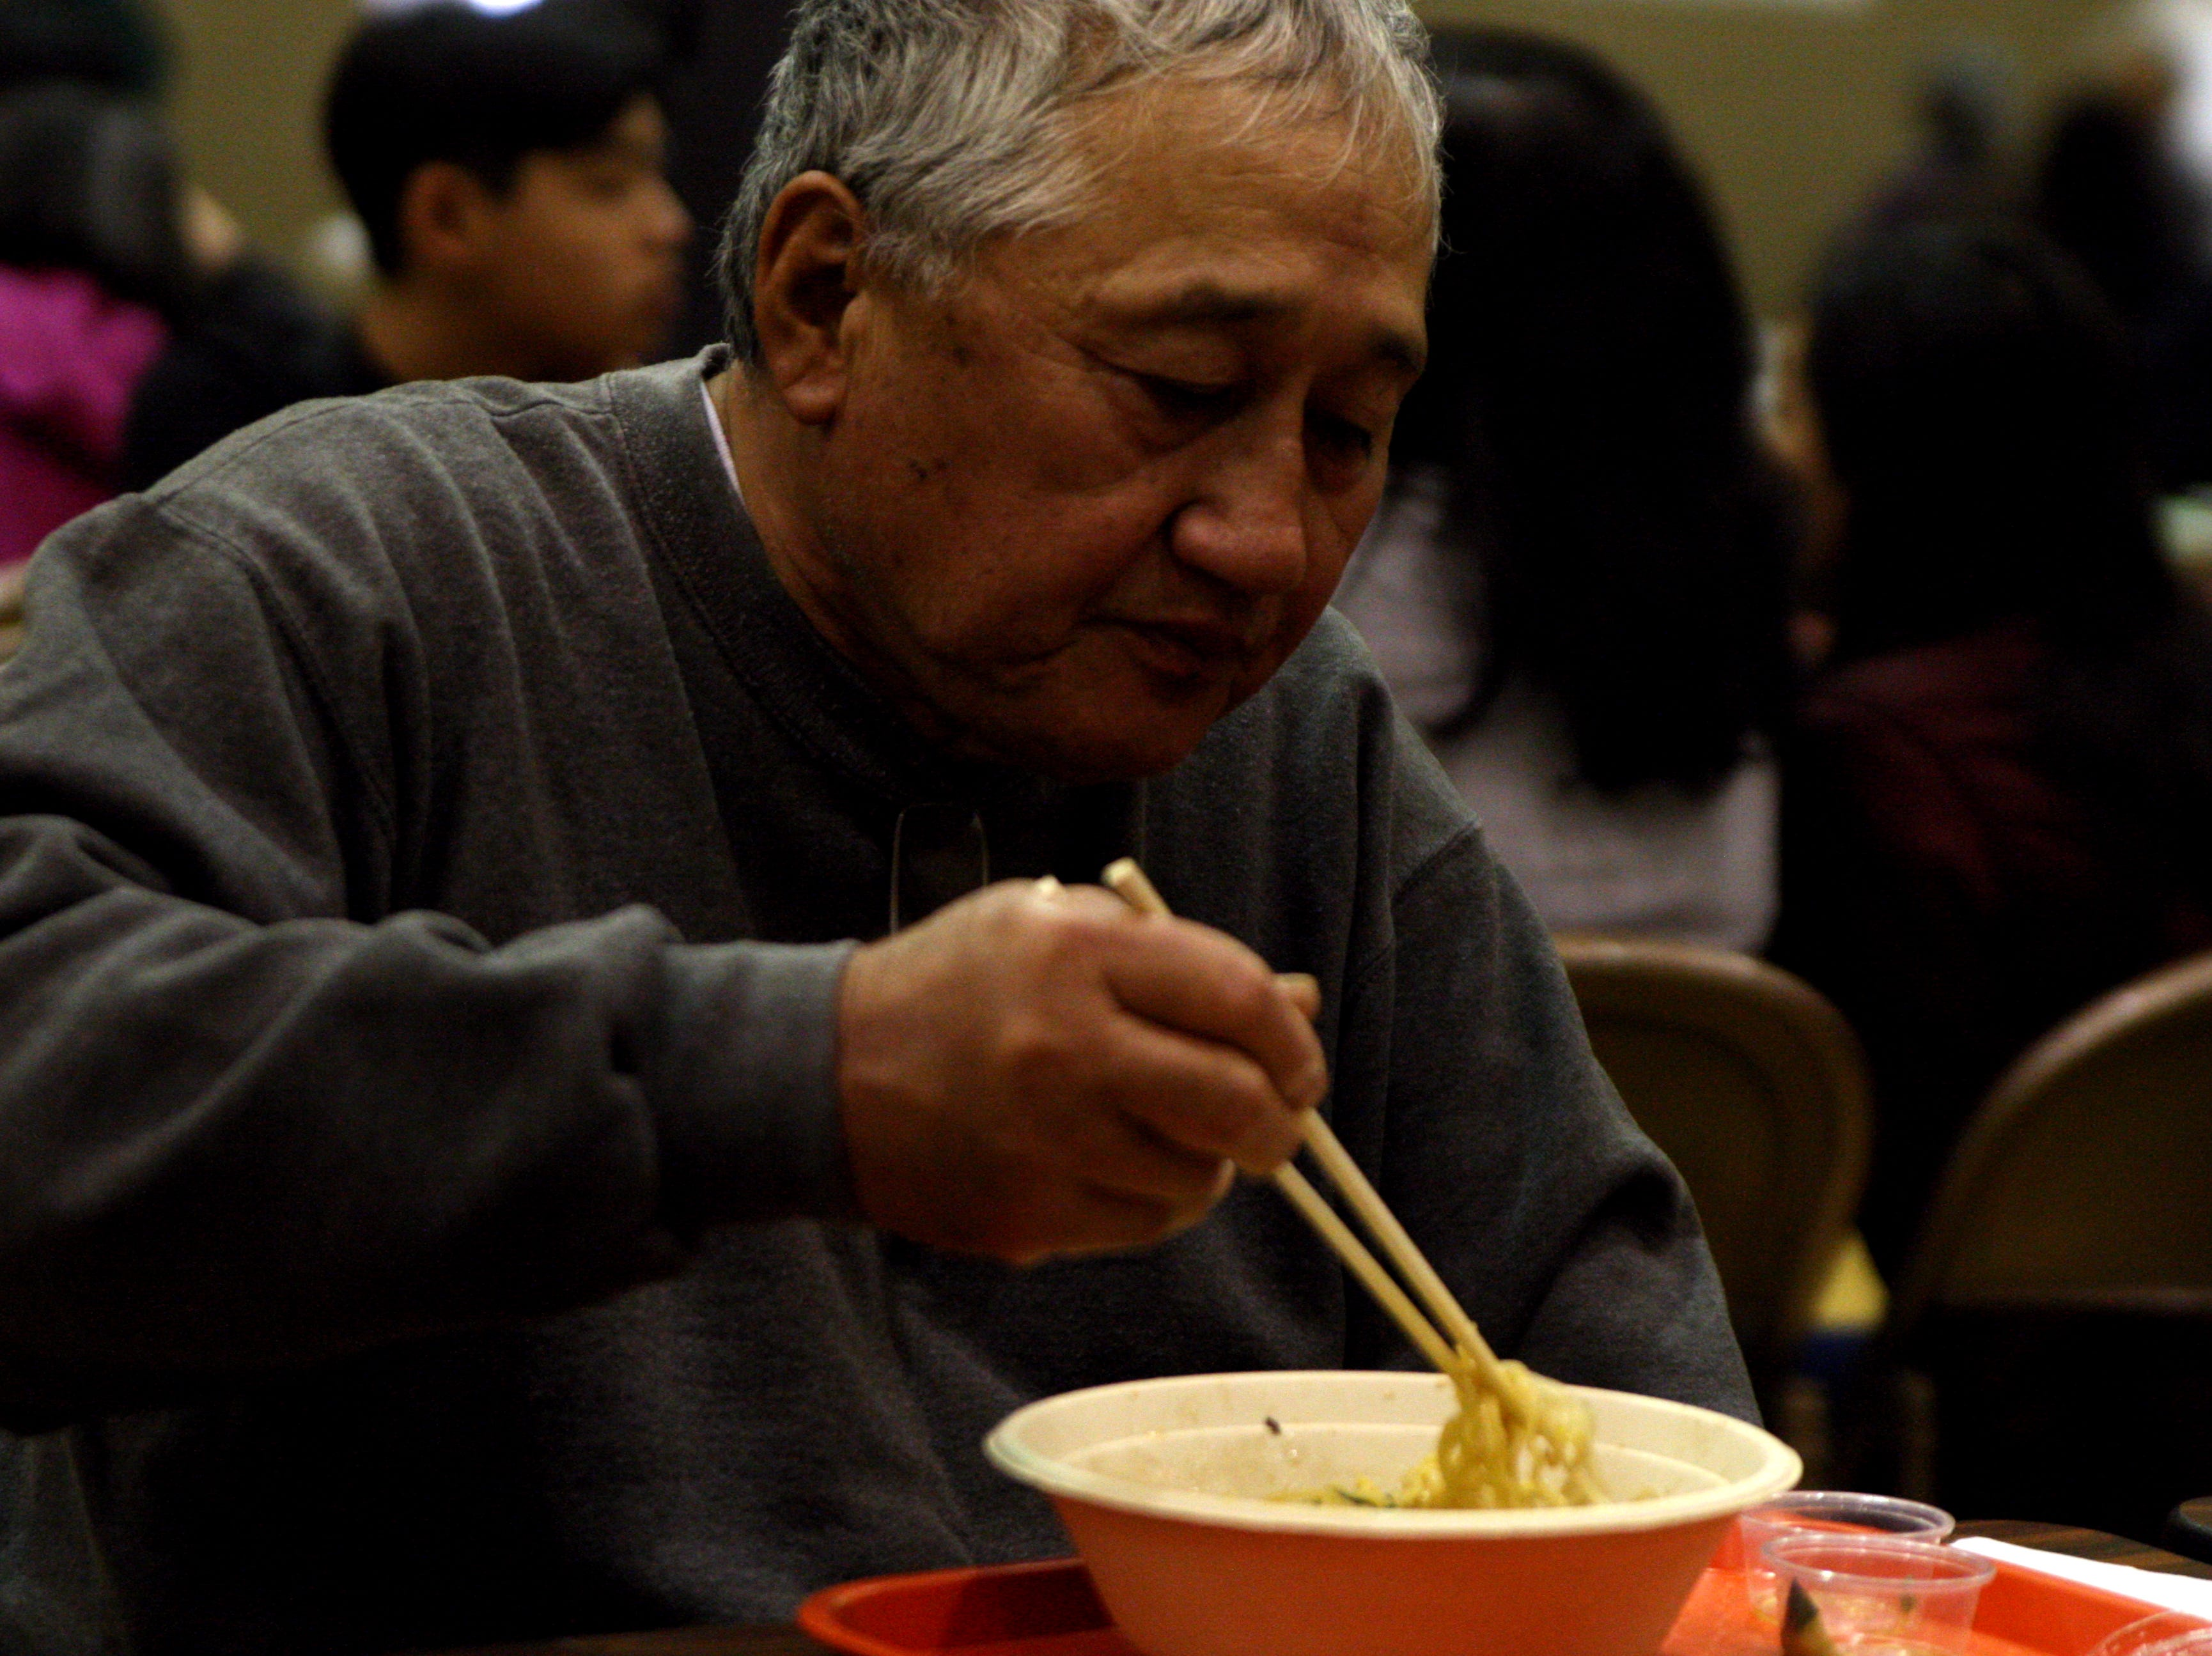 Henry Yoneyama eats ramen with his wife, Chris Yoneyama, at the 12th Annual Asian Festival. They attend most years, and say the ramen is a big attraction for them. April 27, 2019.